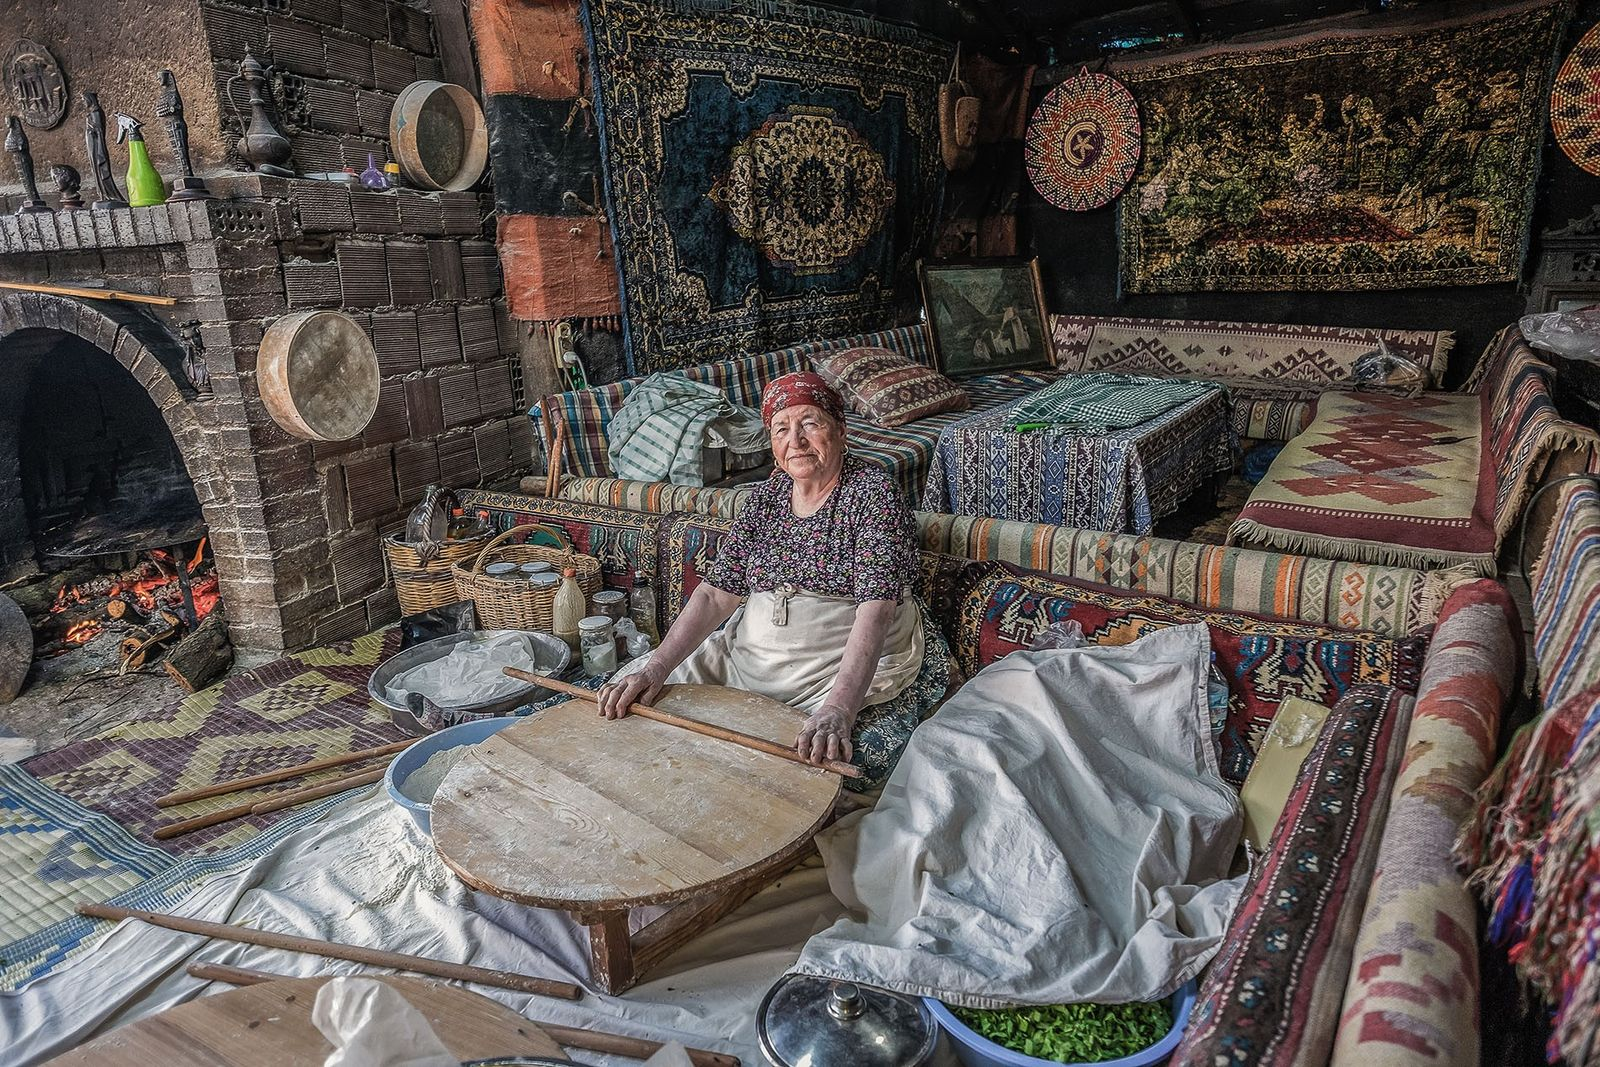 In a village outside Pamukkale, a womansets about making 'gozleme', a local spinach and feta pie.